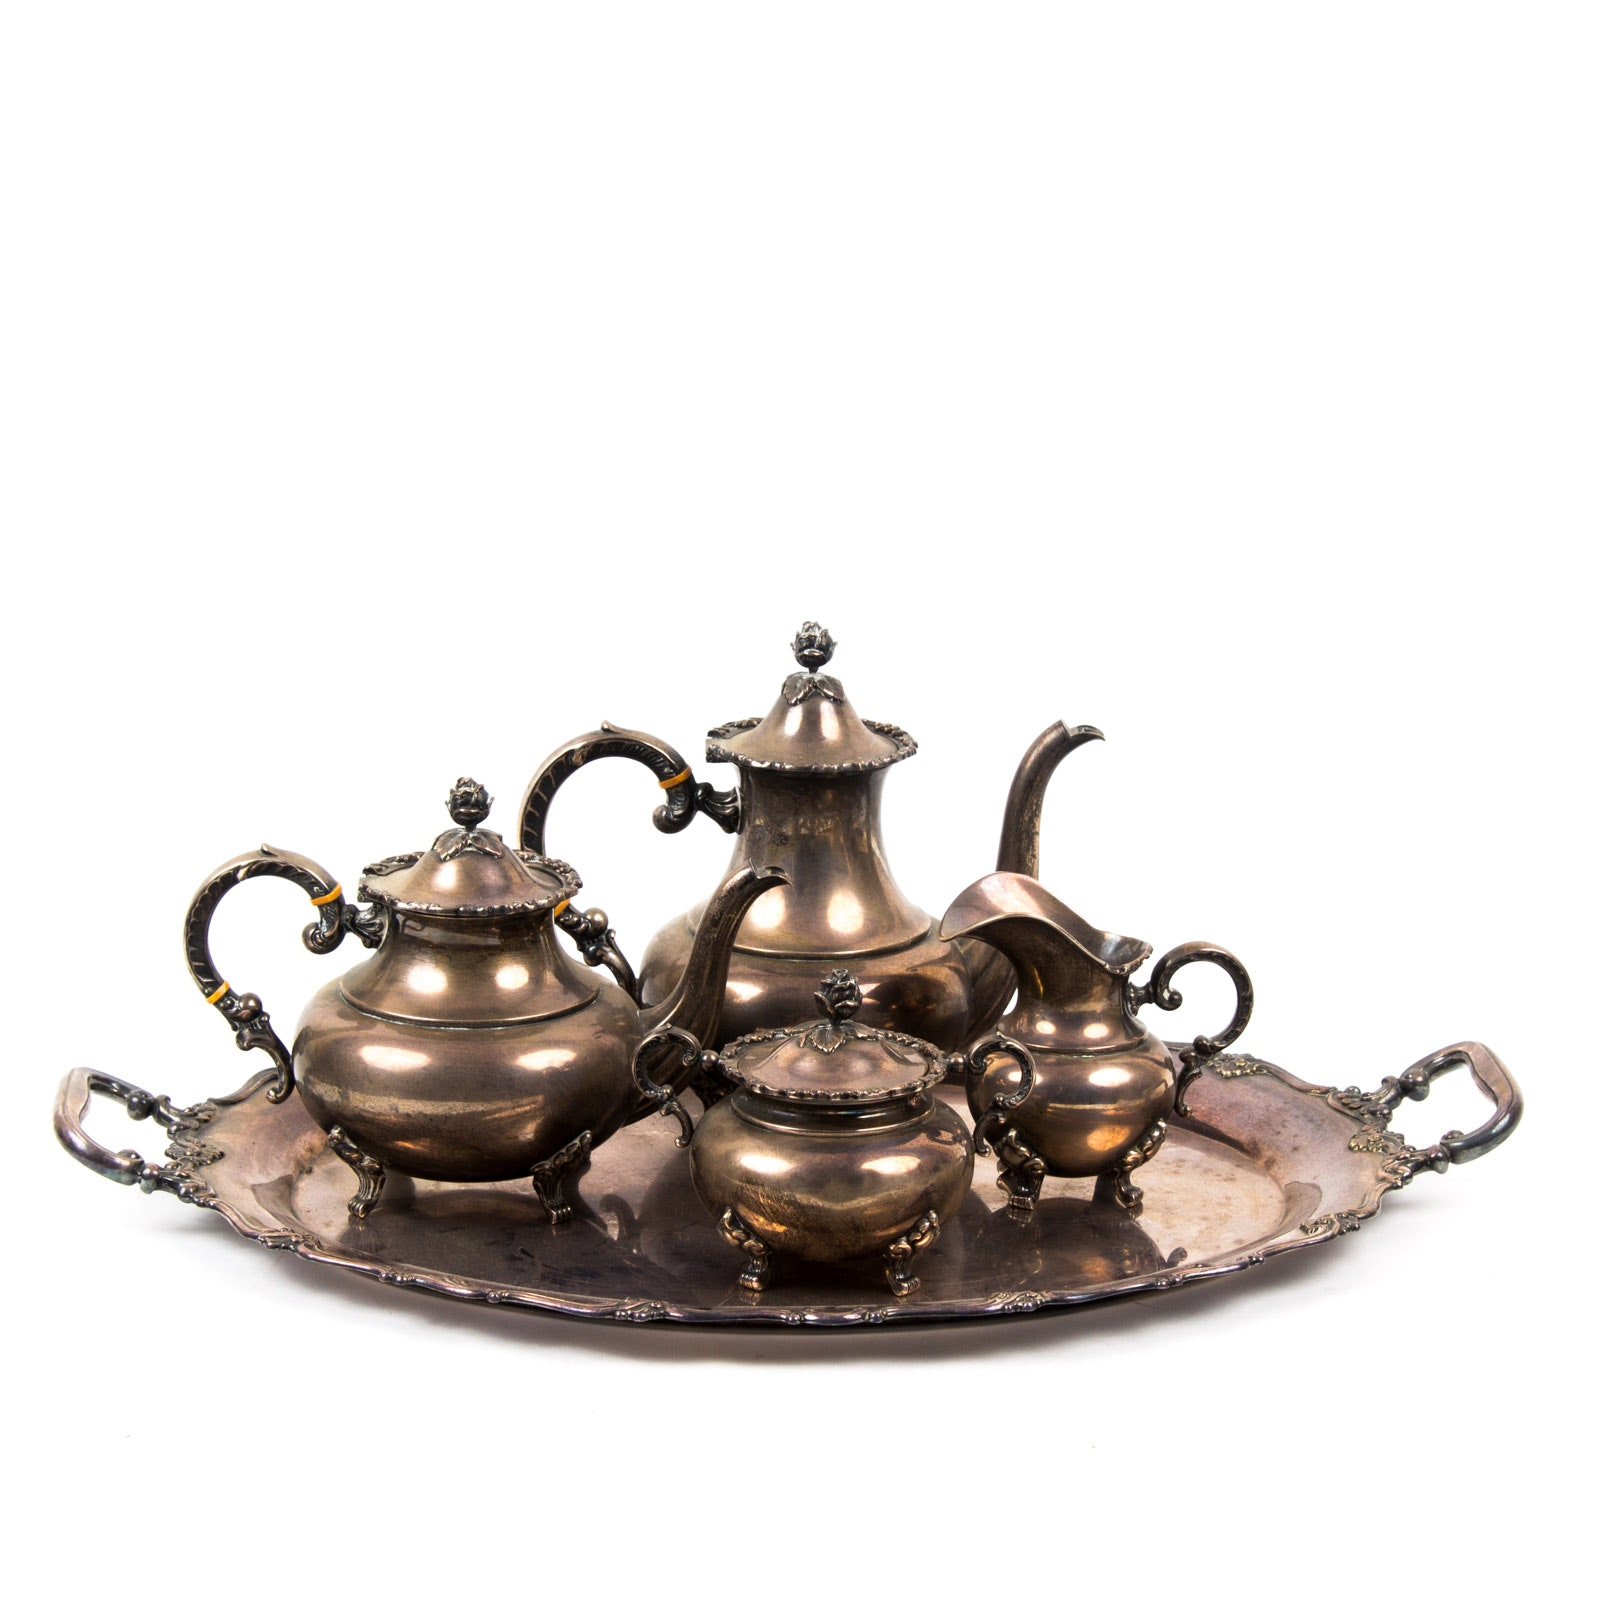 German Sterling Silver Tea and Coffee Set With Silver Tone Tray